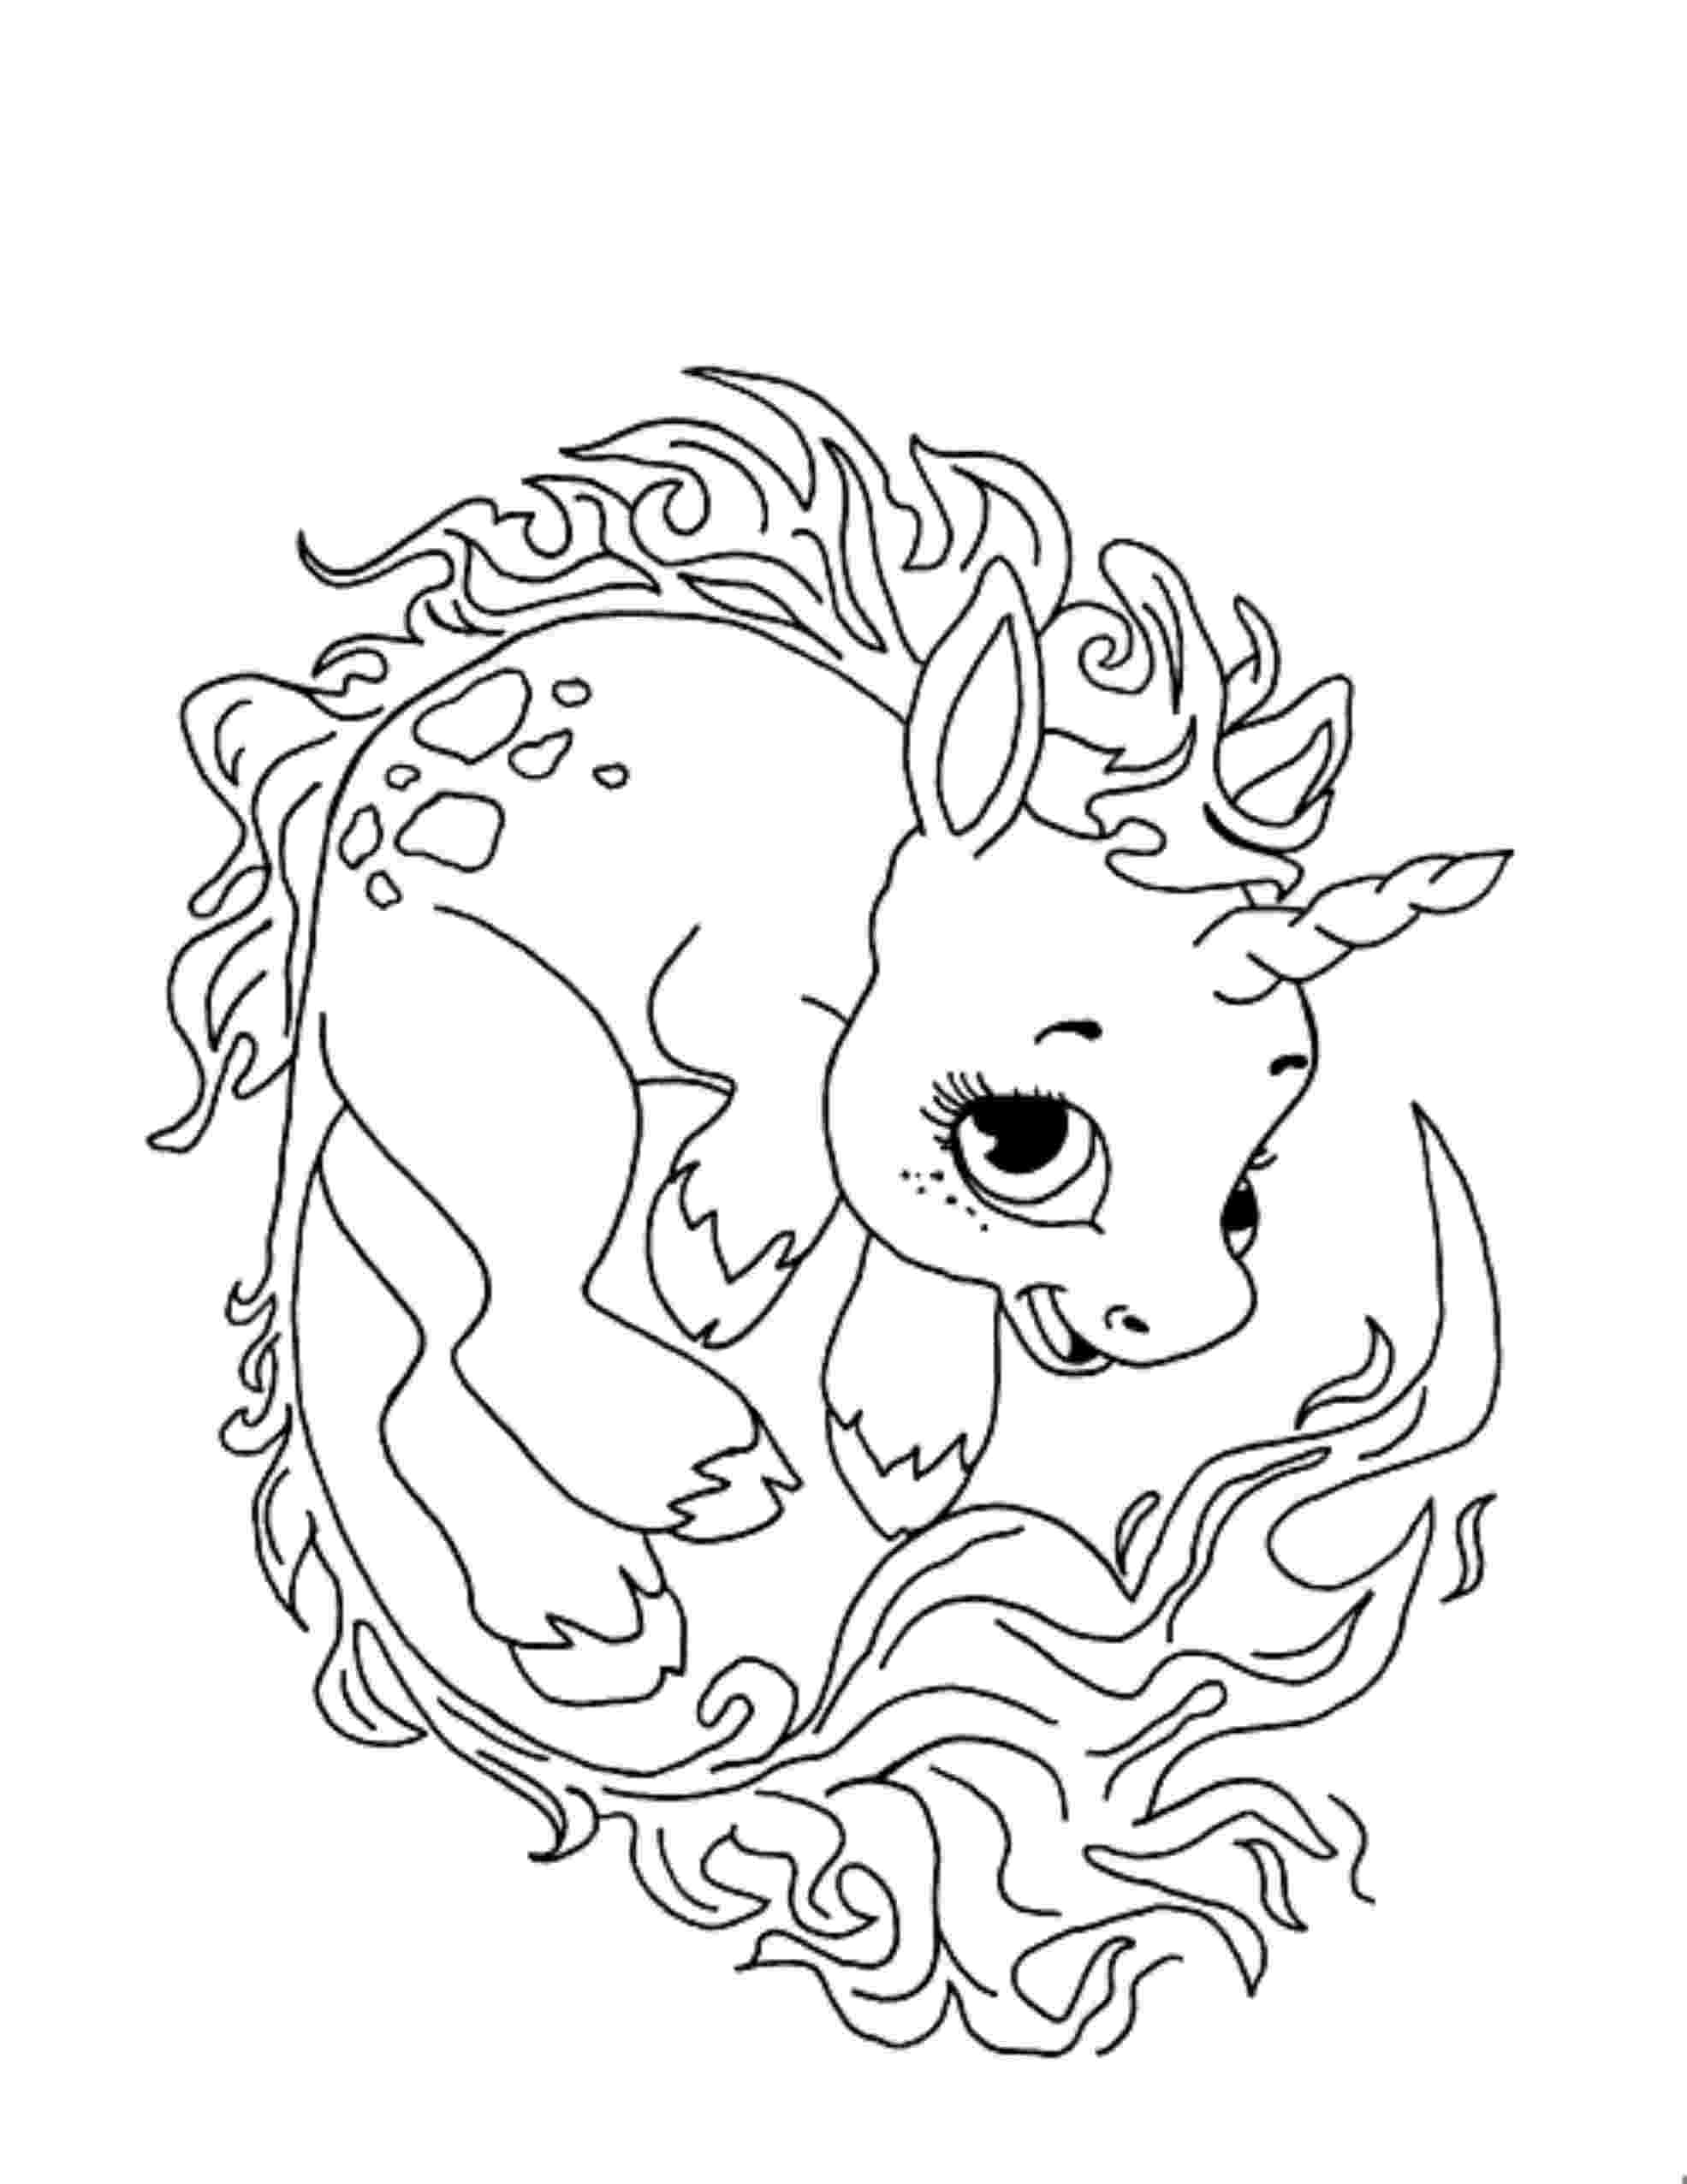 cute unicorn coloring pages cute unicorn coloring page free printable coloring pages cute coloring unicorn pages